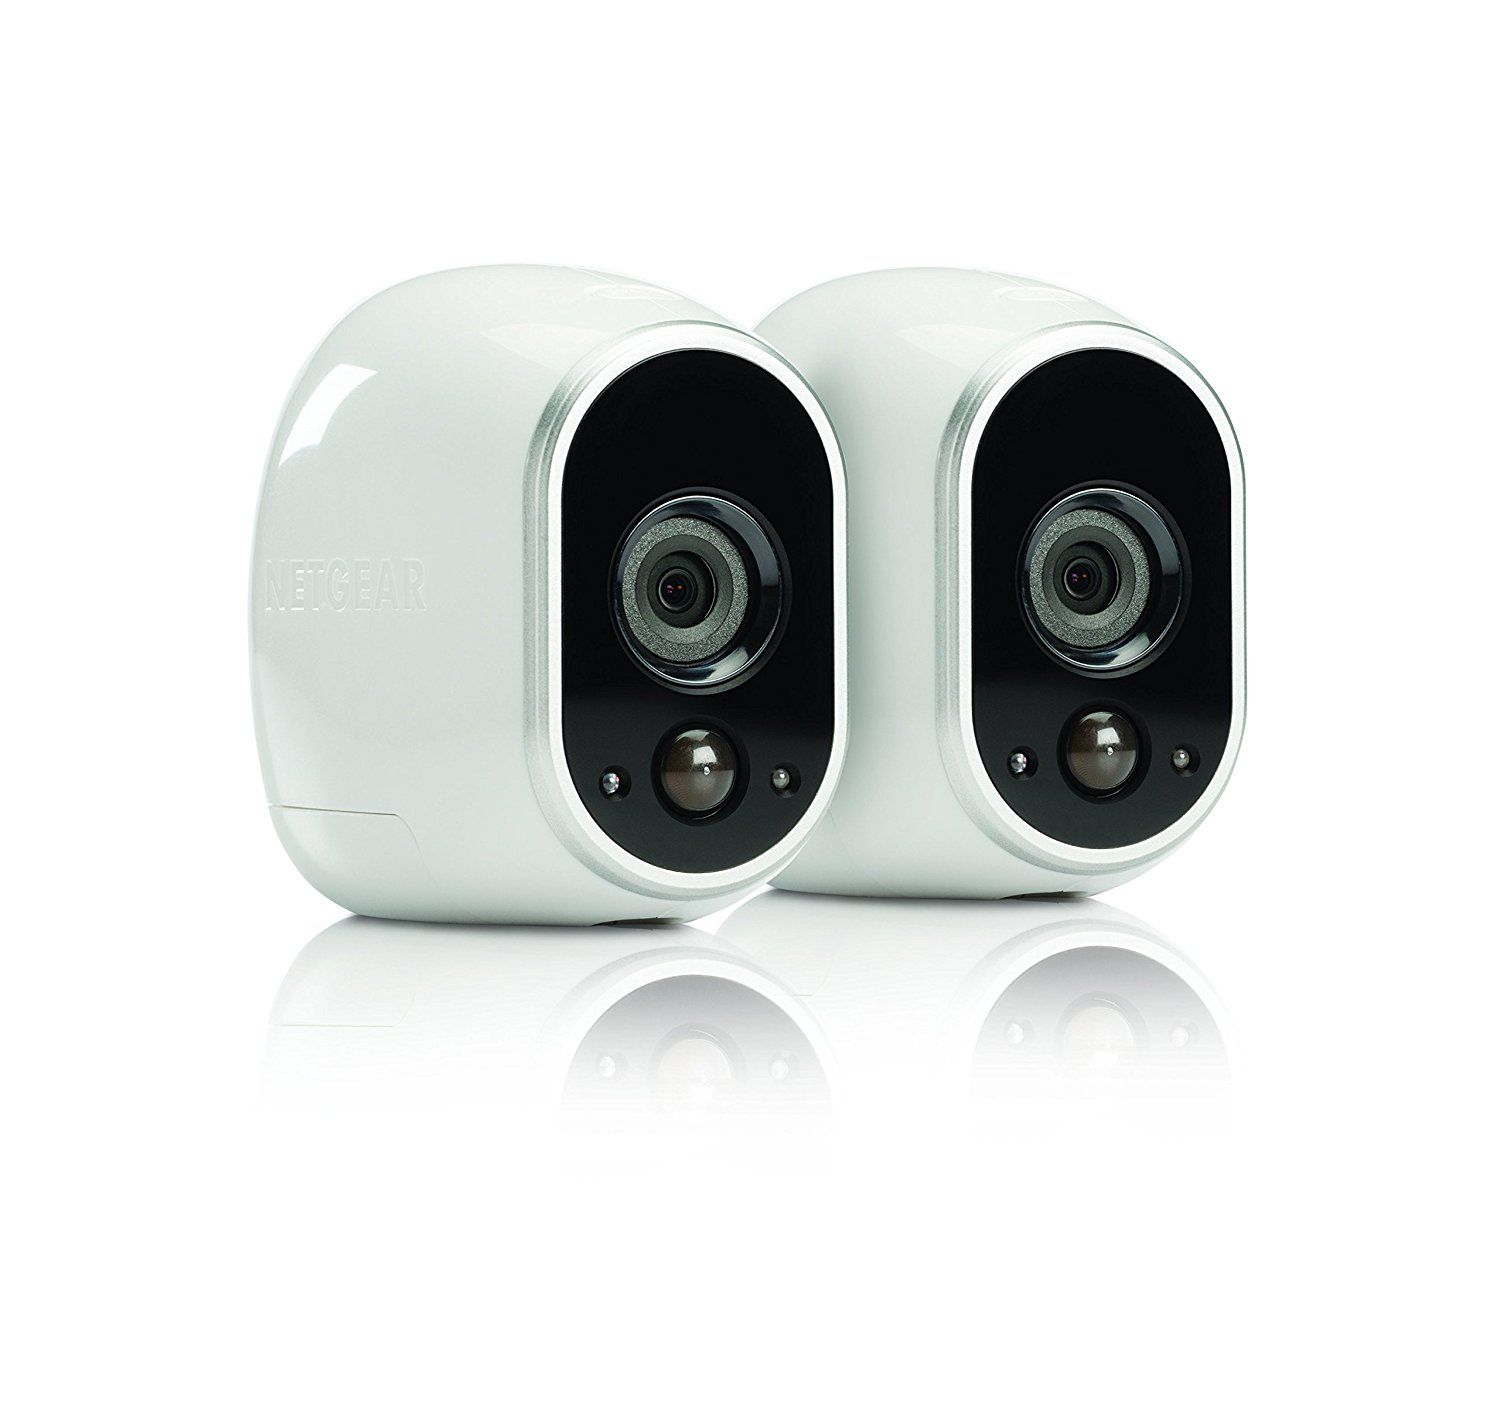 Top 10 Best Security Camera Systems in 2017 Reviews | Top 10 Best ...